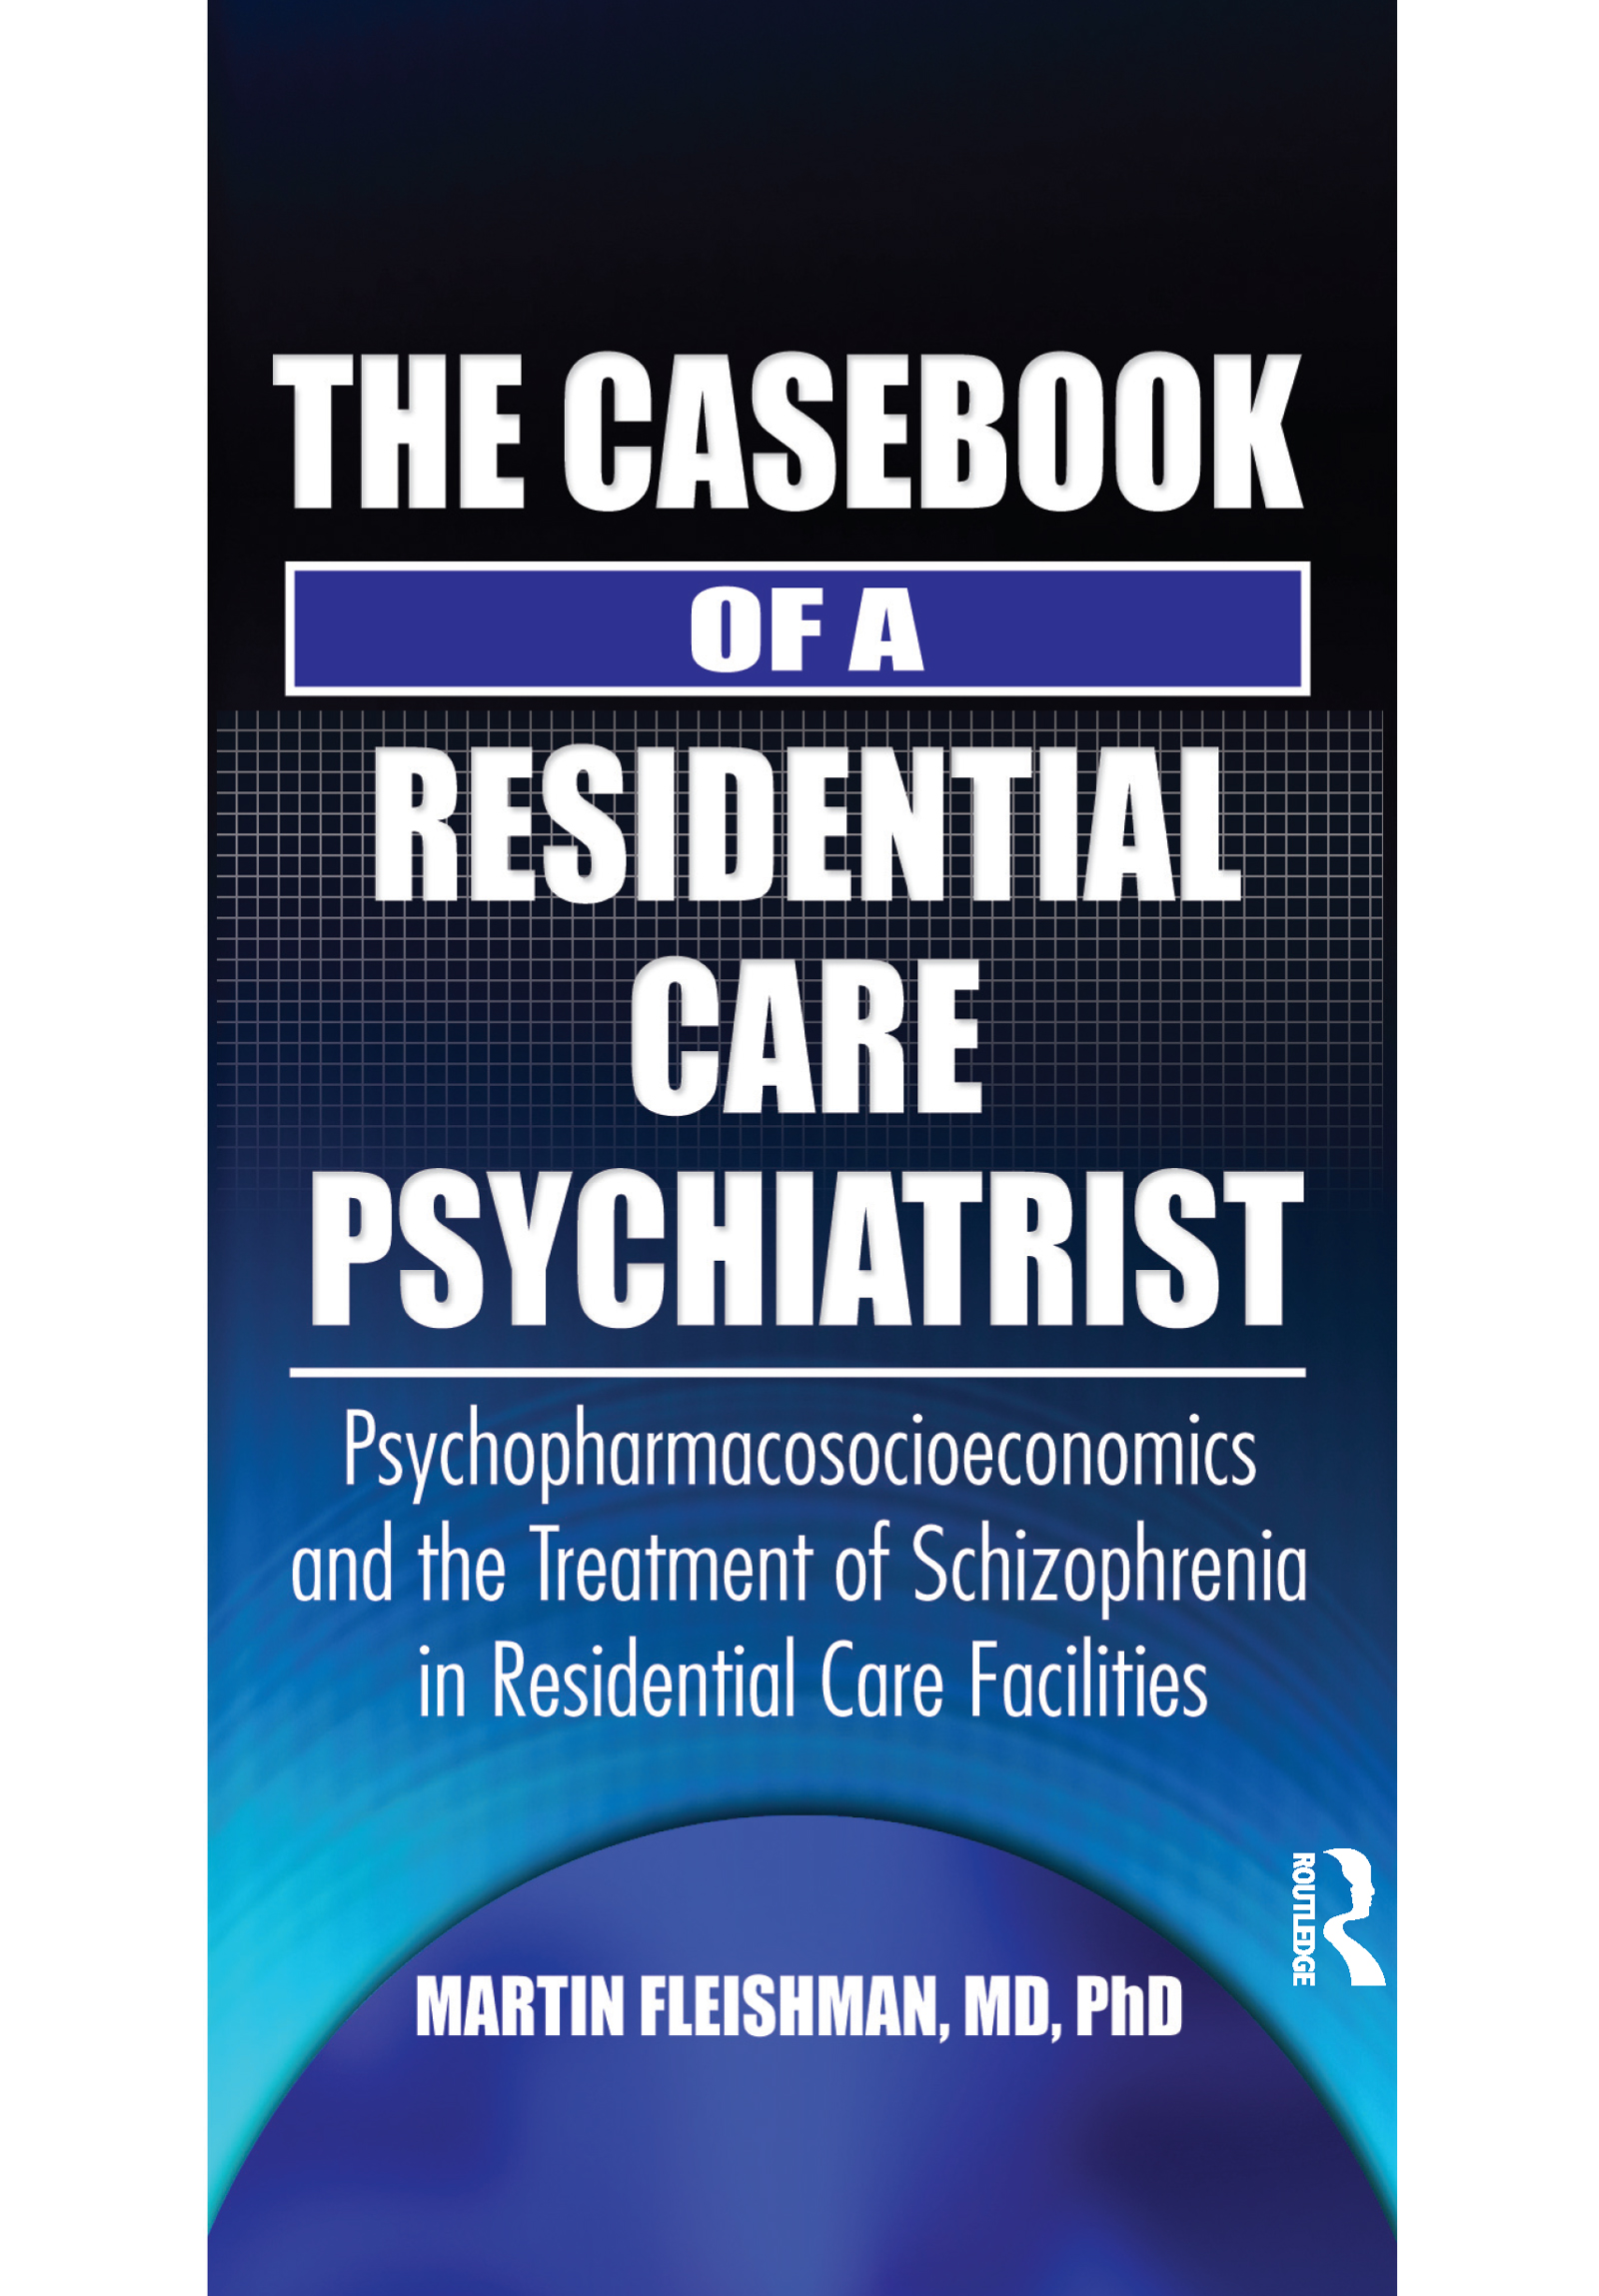 The Casebook of a Residential Care Psychiatrist: Psychopharmacosocioeconomics and the Treatment of Schizophrenia in Residential Care Facilities (Paperback) book cover